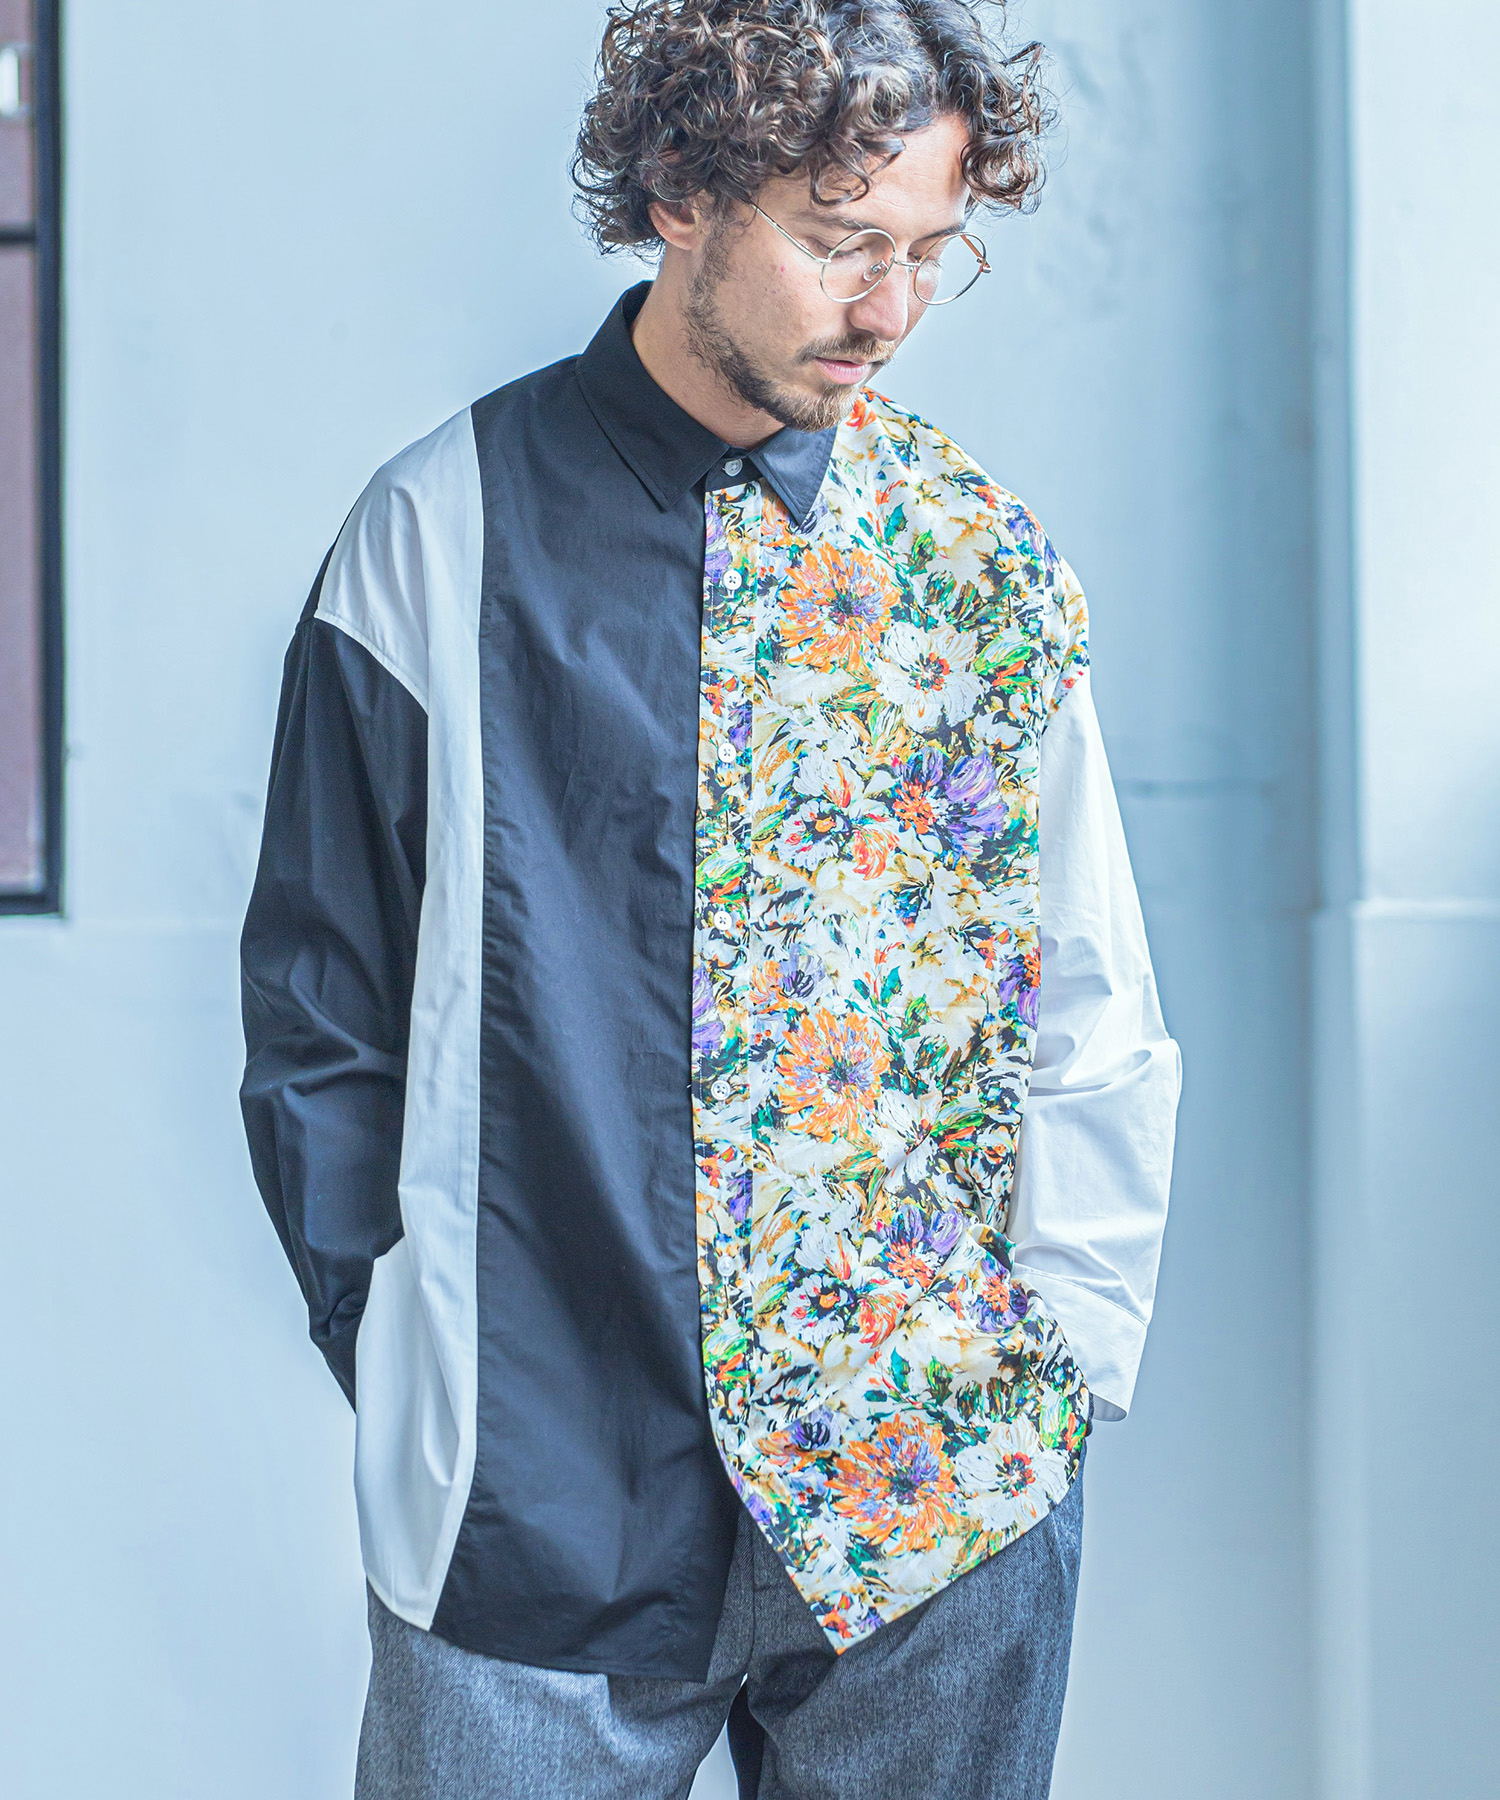 【ANGENEHM(アンゲネーム)】【予約販売9月中旬~下旬入荷】Flower Combination Crazy Over Size Shirts(MADE IN JAPAN) シャツ(ANG-041)